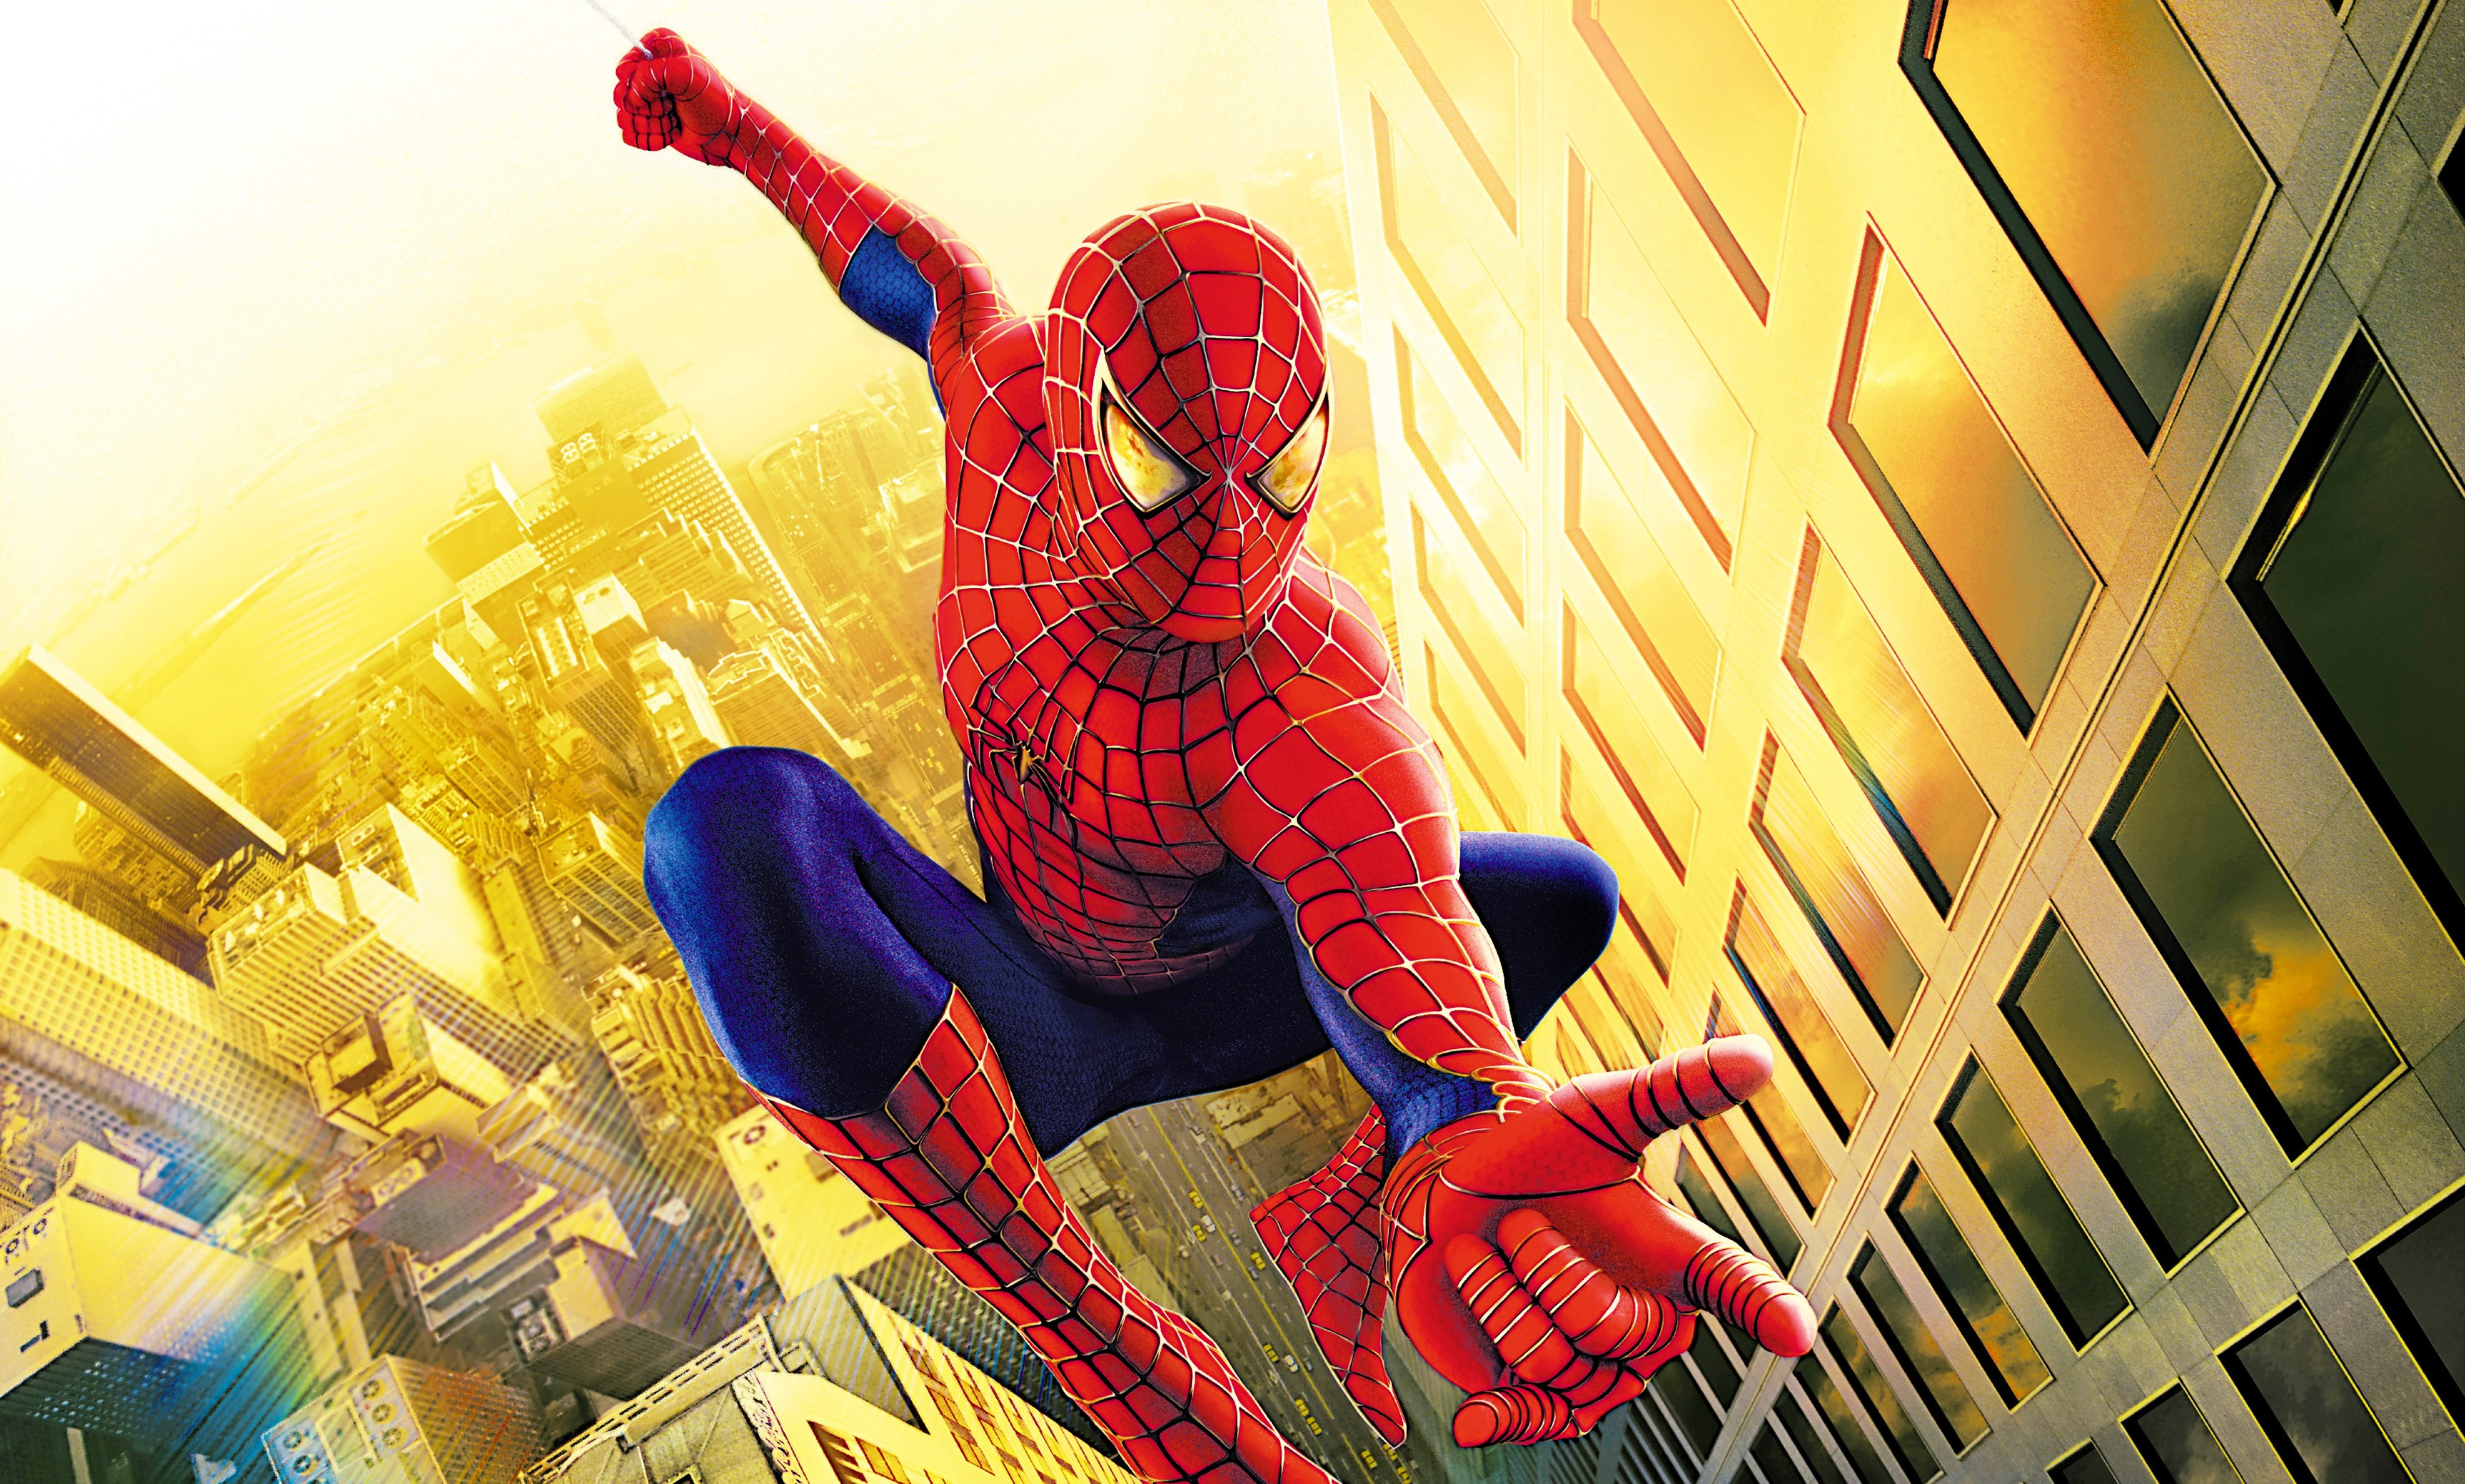 Spider-Man Backgrounds, Pictures, Images